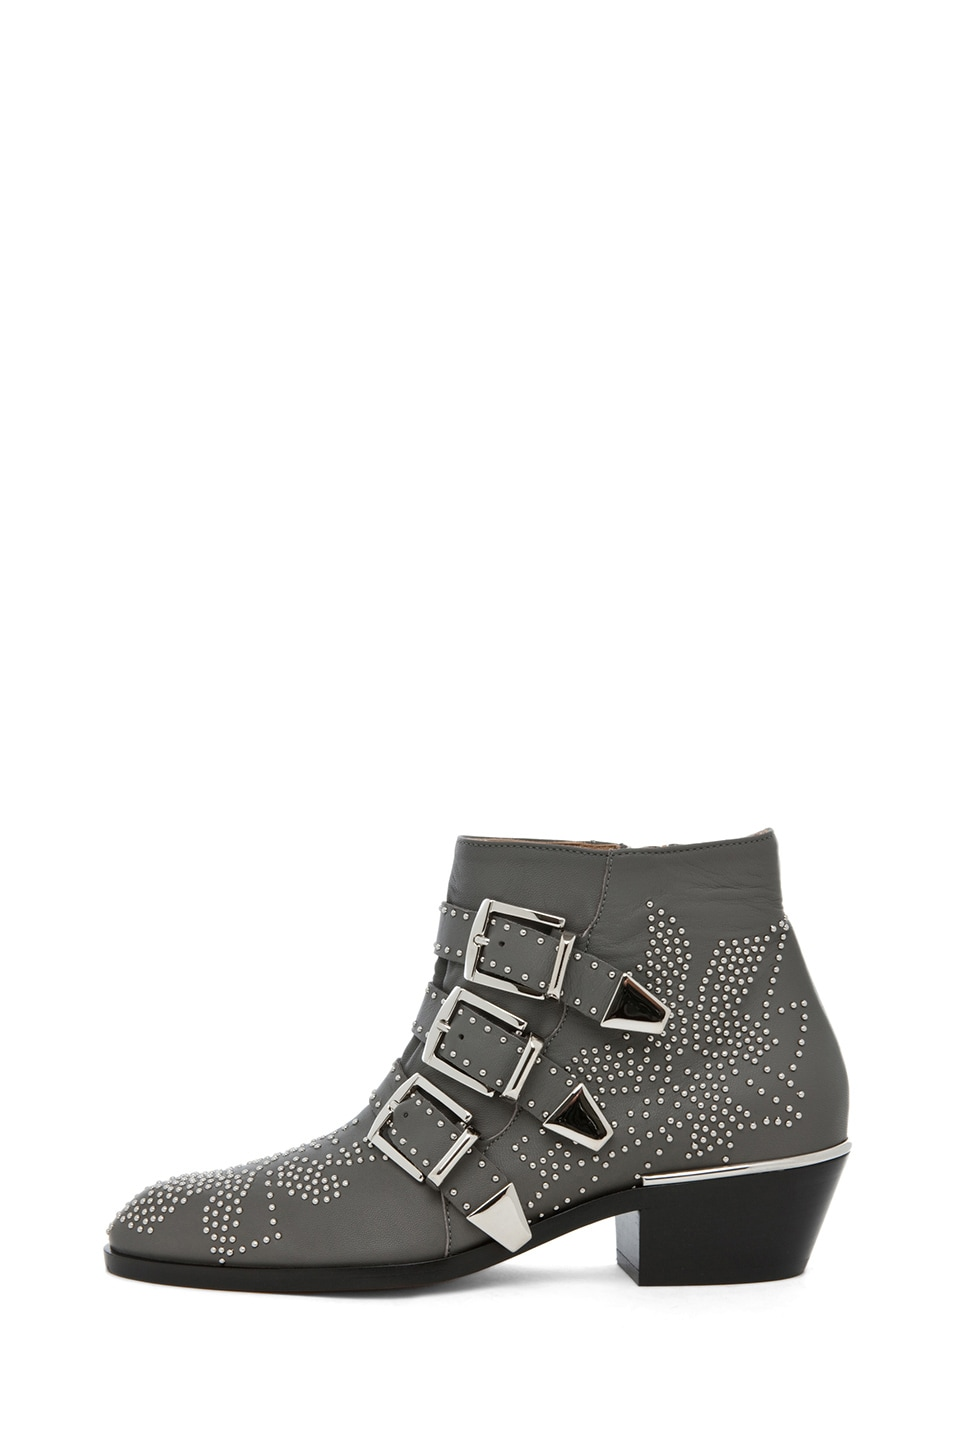 Image 1 of Chloe Susanna Studded Bootie in Charcoal